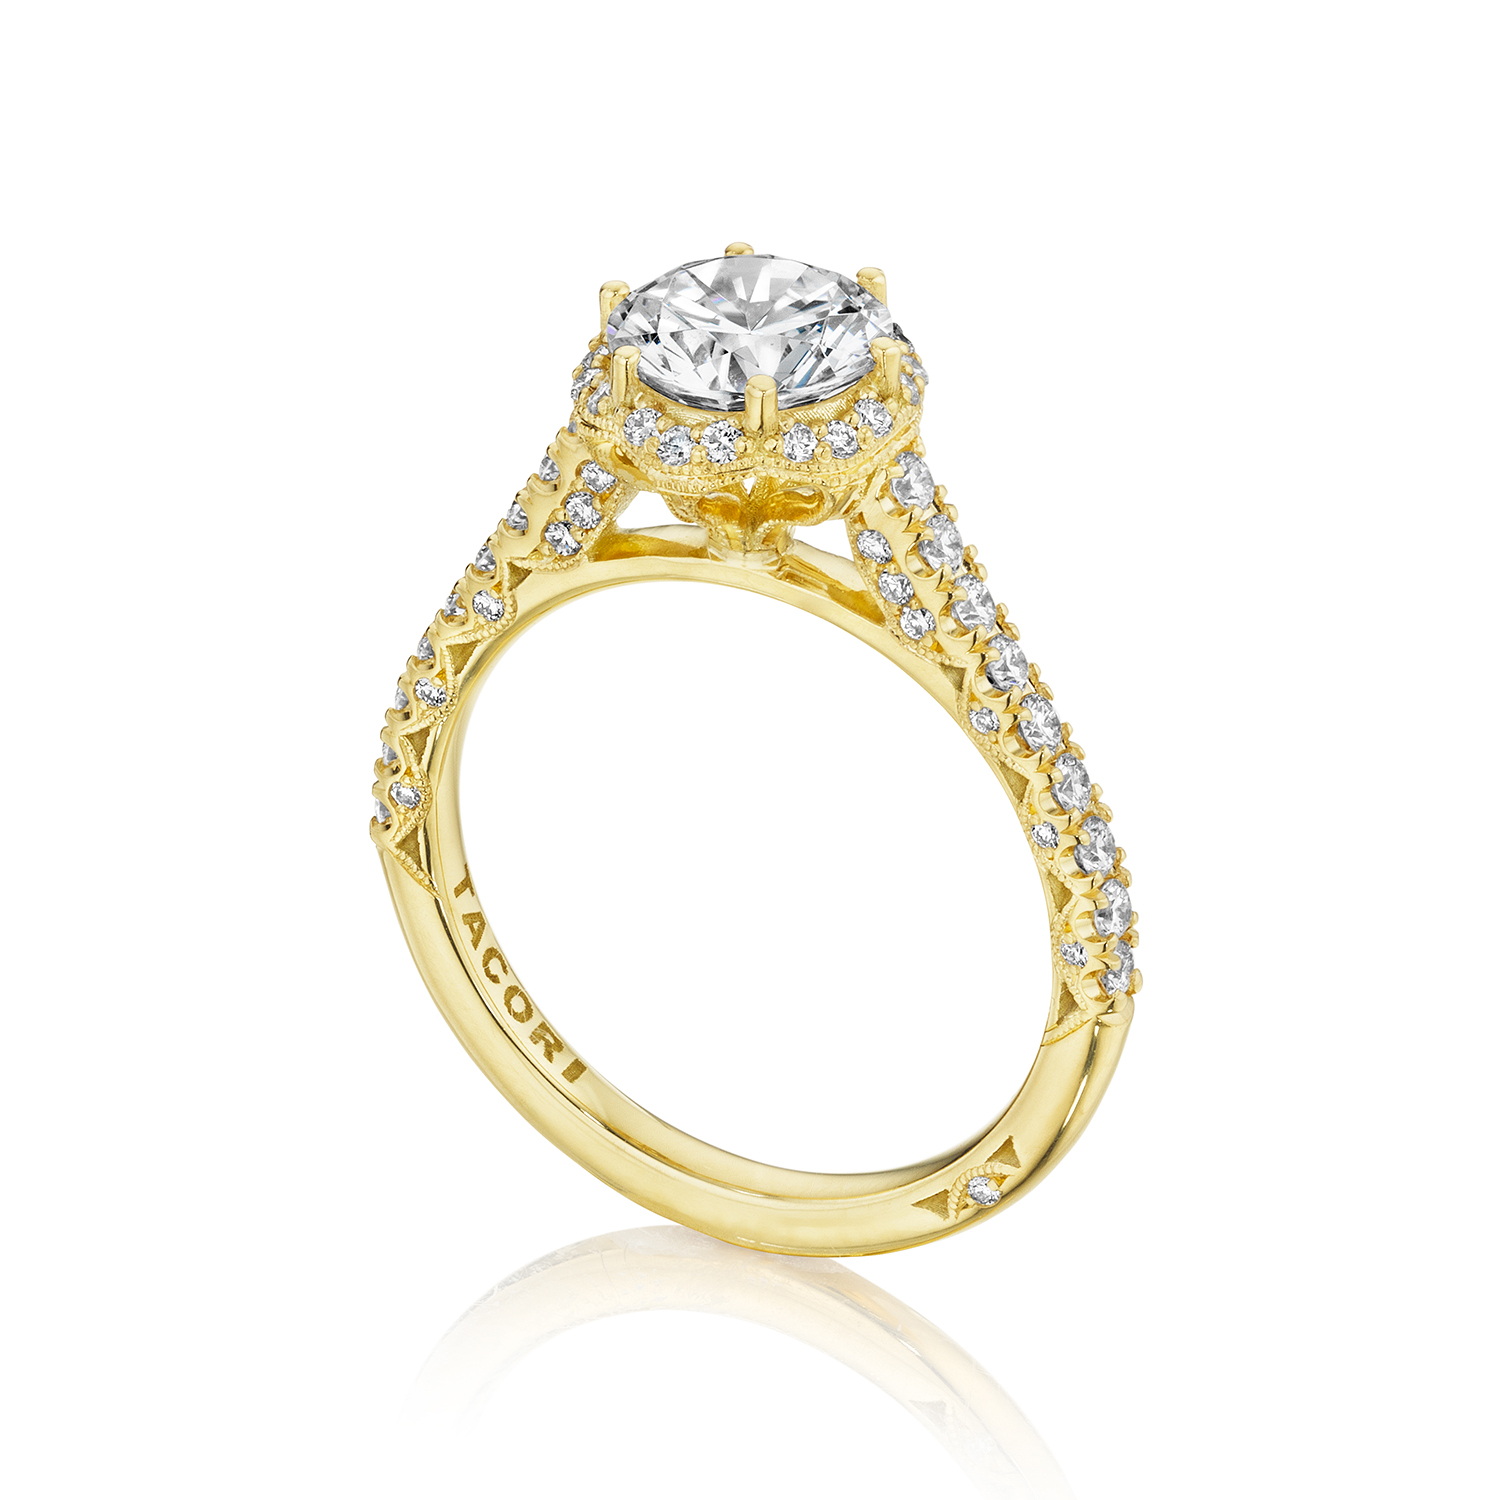 Engagement Rings Tacori: Tacori Engagement Rings Gold Floral Halo Setting